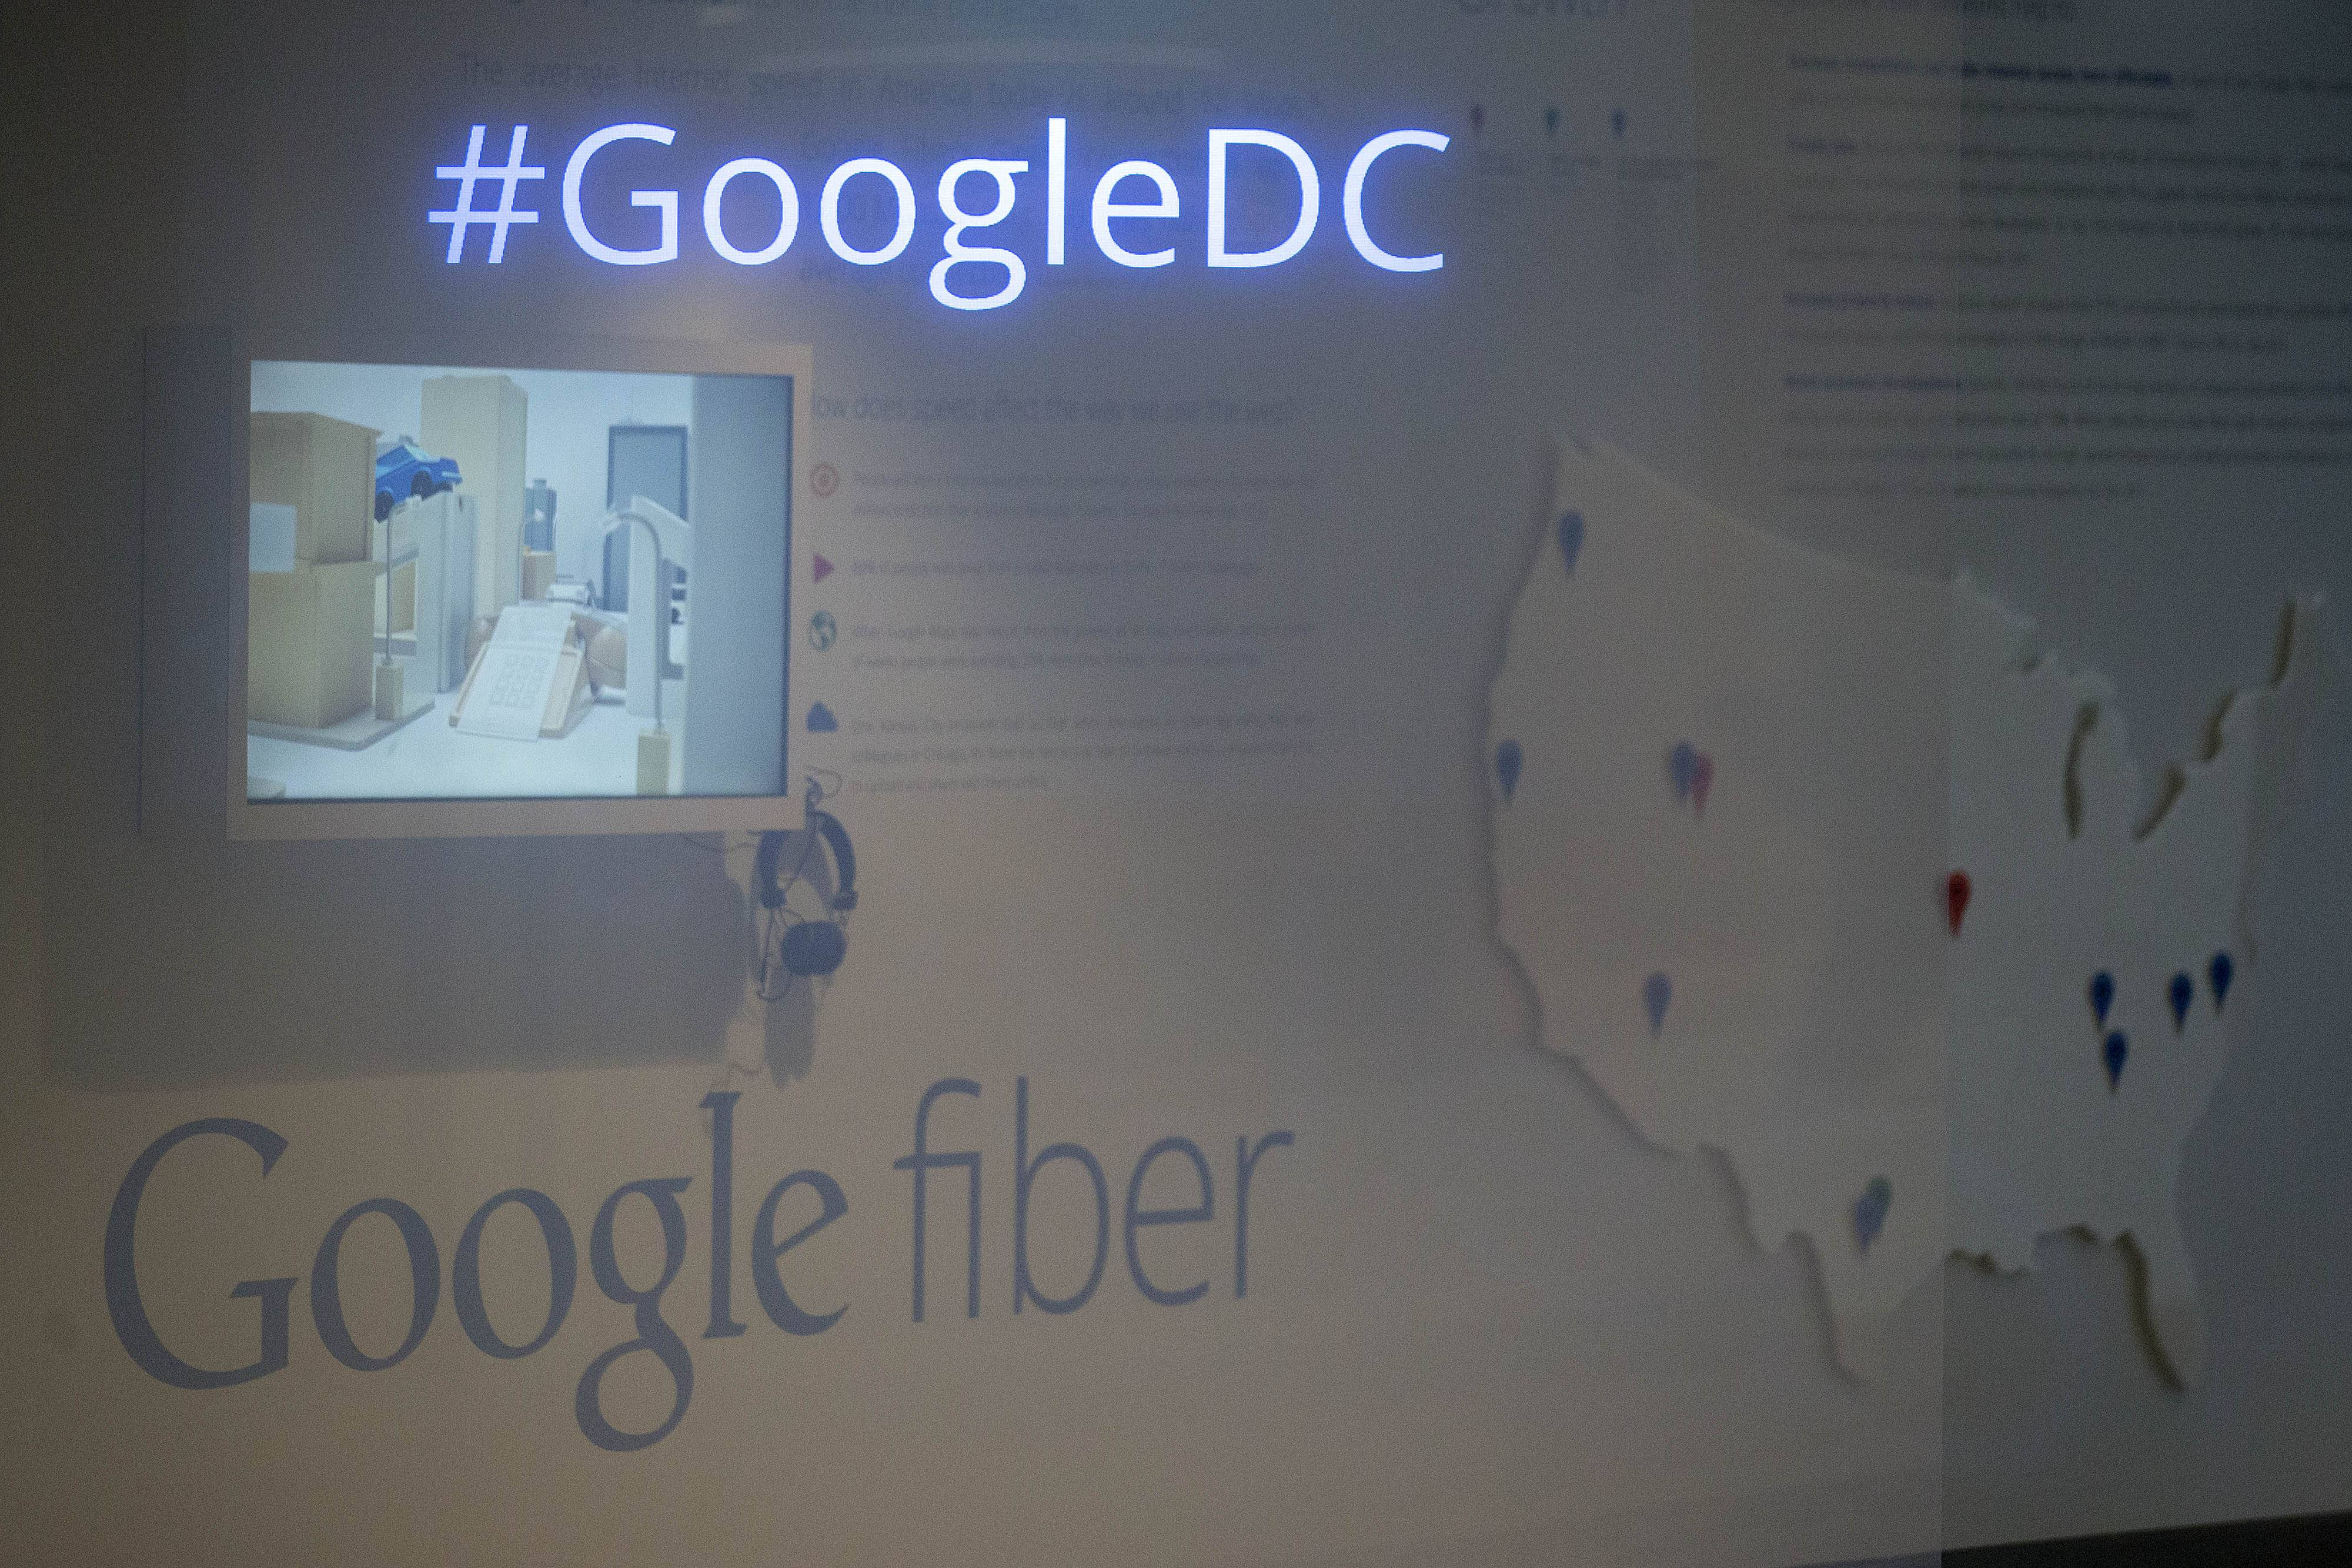 A #GoogleDC sign and Google Inc. Fiber signage is displayed at the Google Inc. office in Washington, D.C.